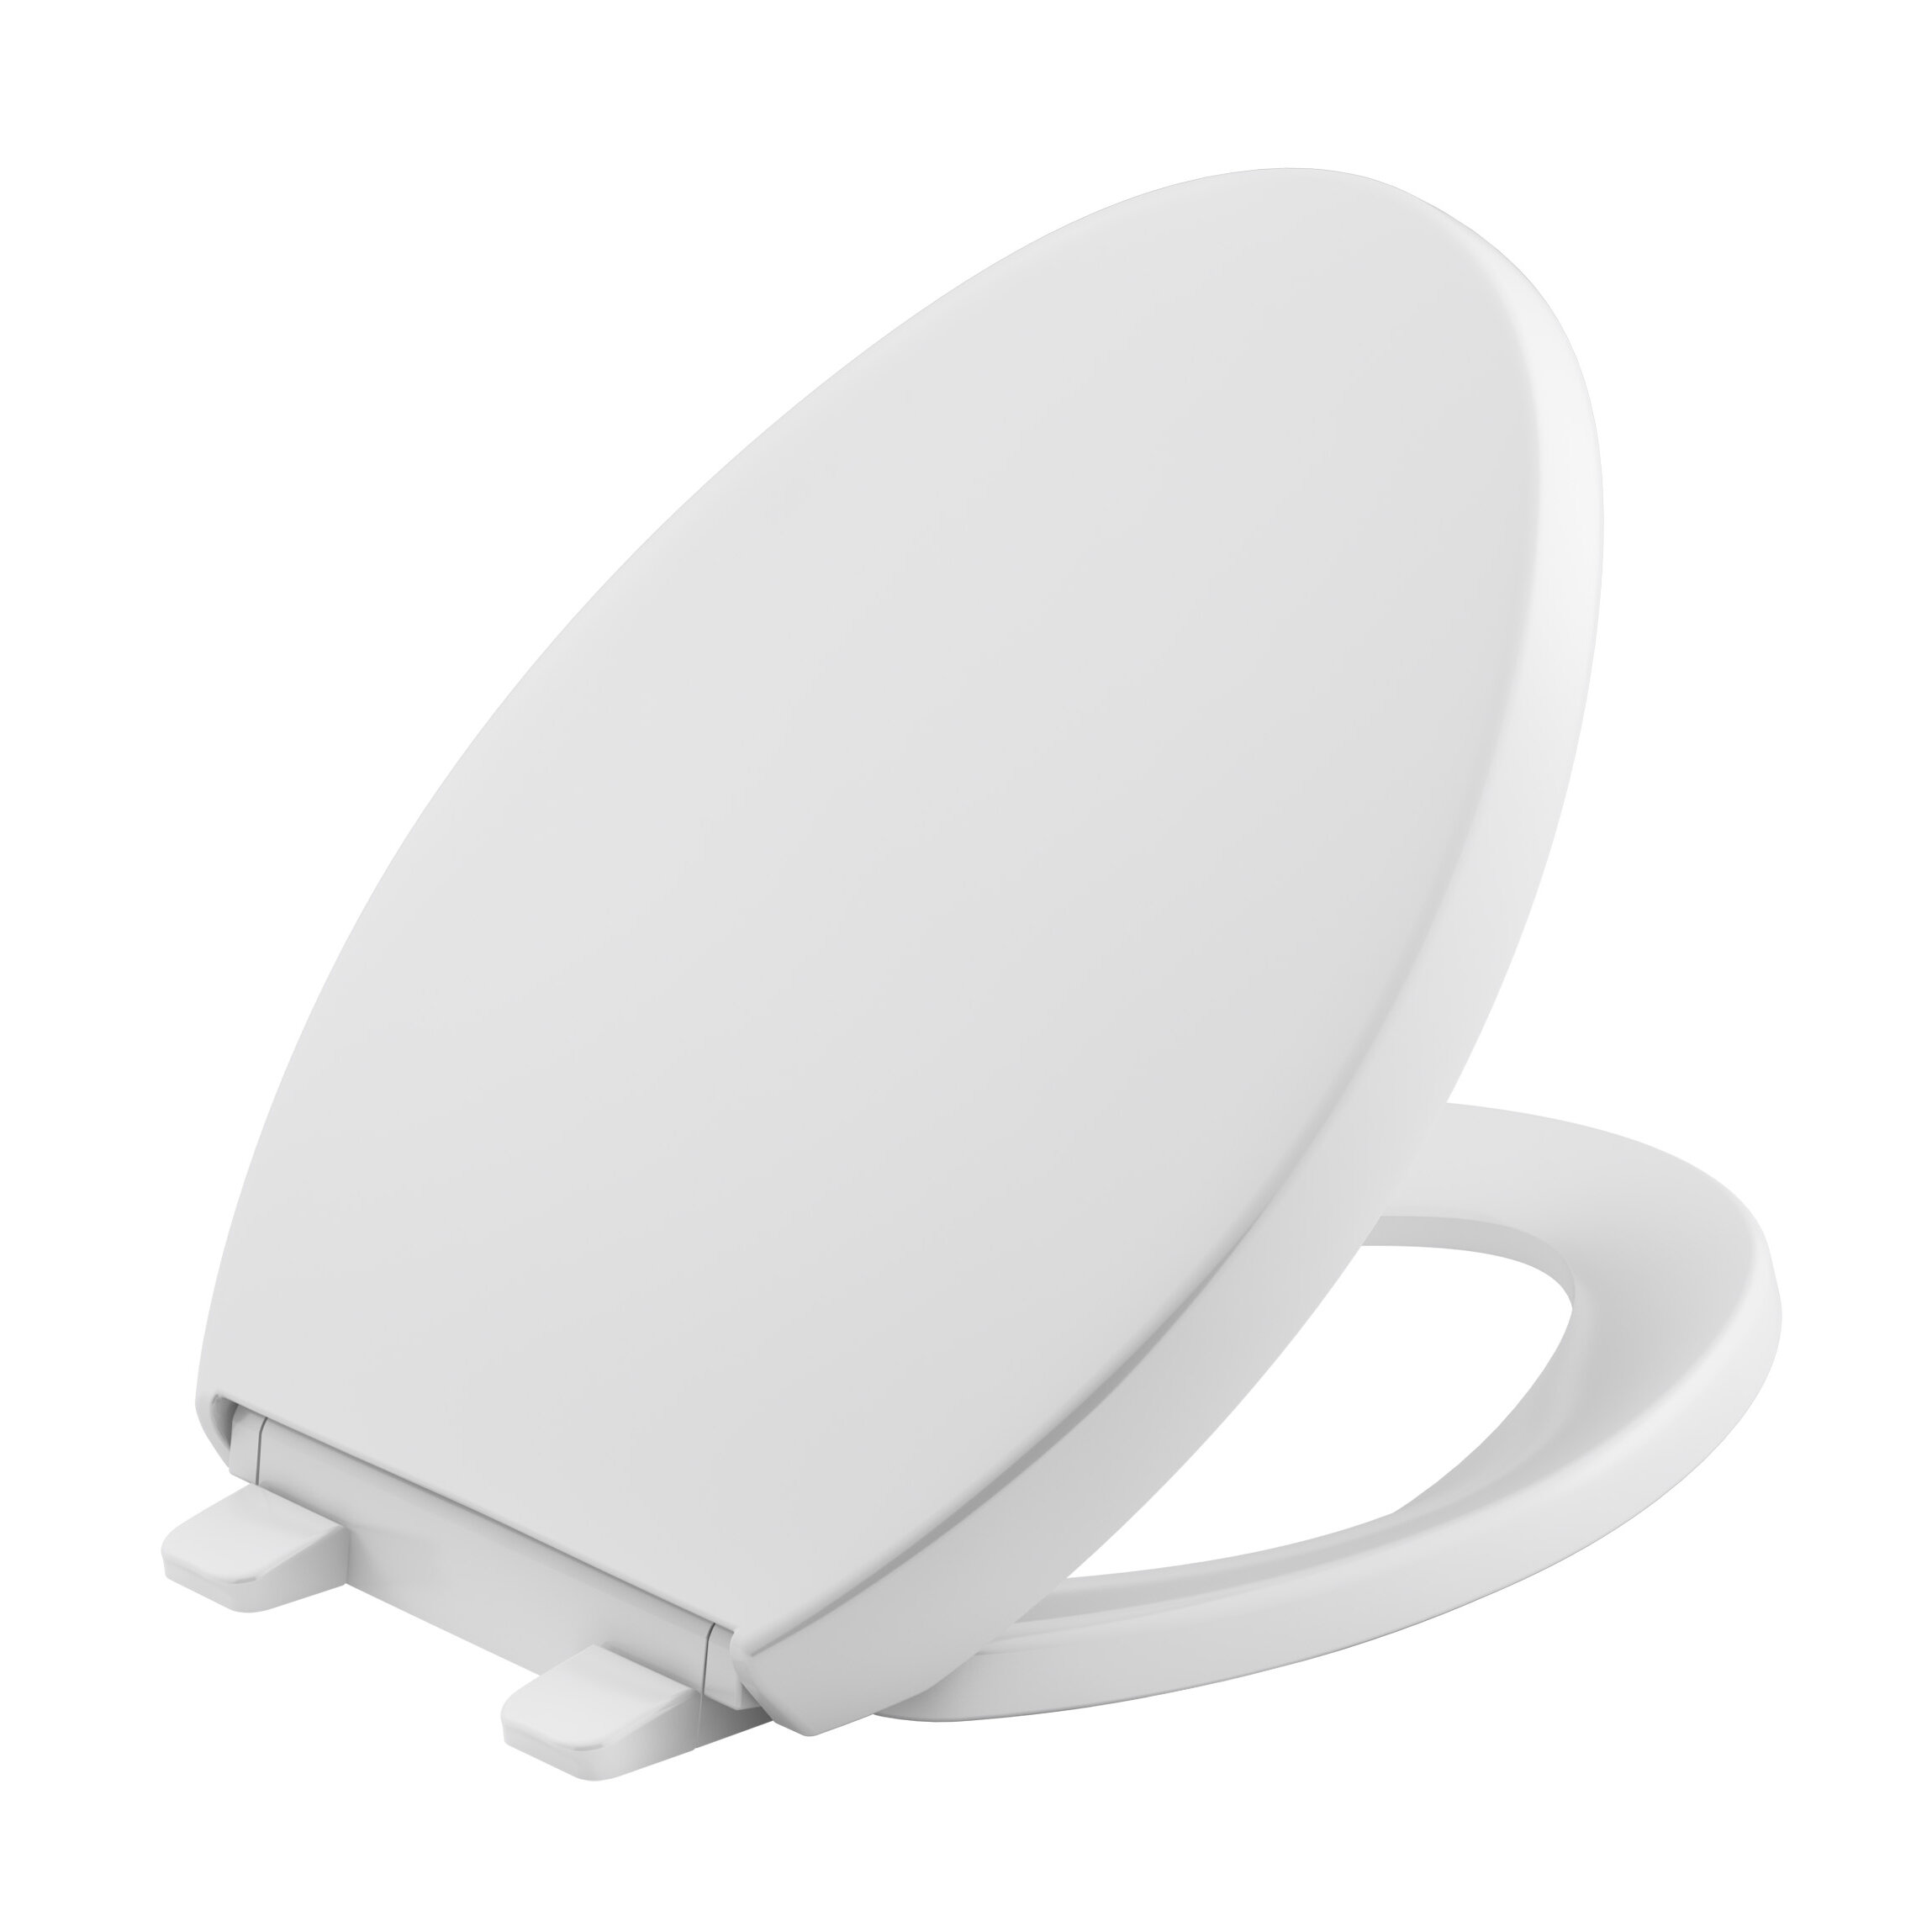 Amazing Reveal Quiet Close With Grip Tight Elongated Toilet Seat Pabps2019 Chair Design Images Pabps2019Com